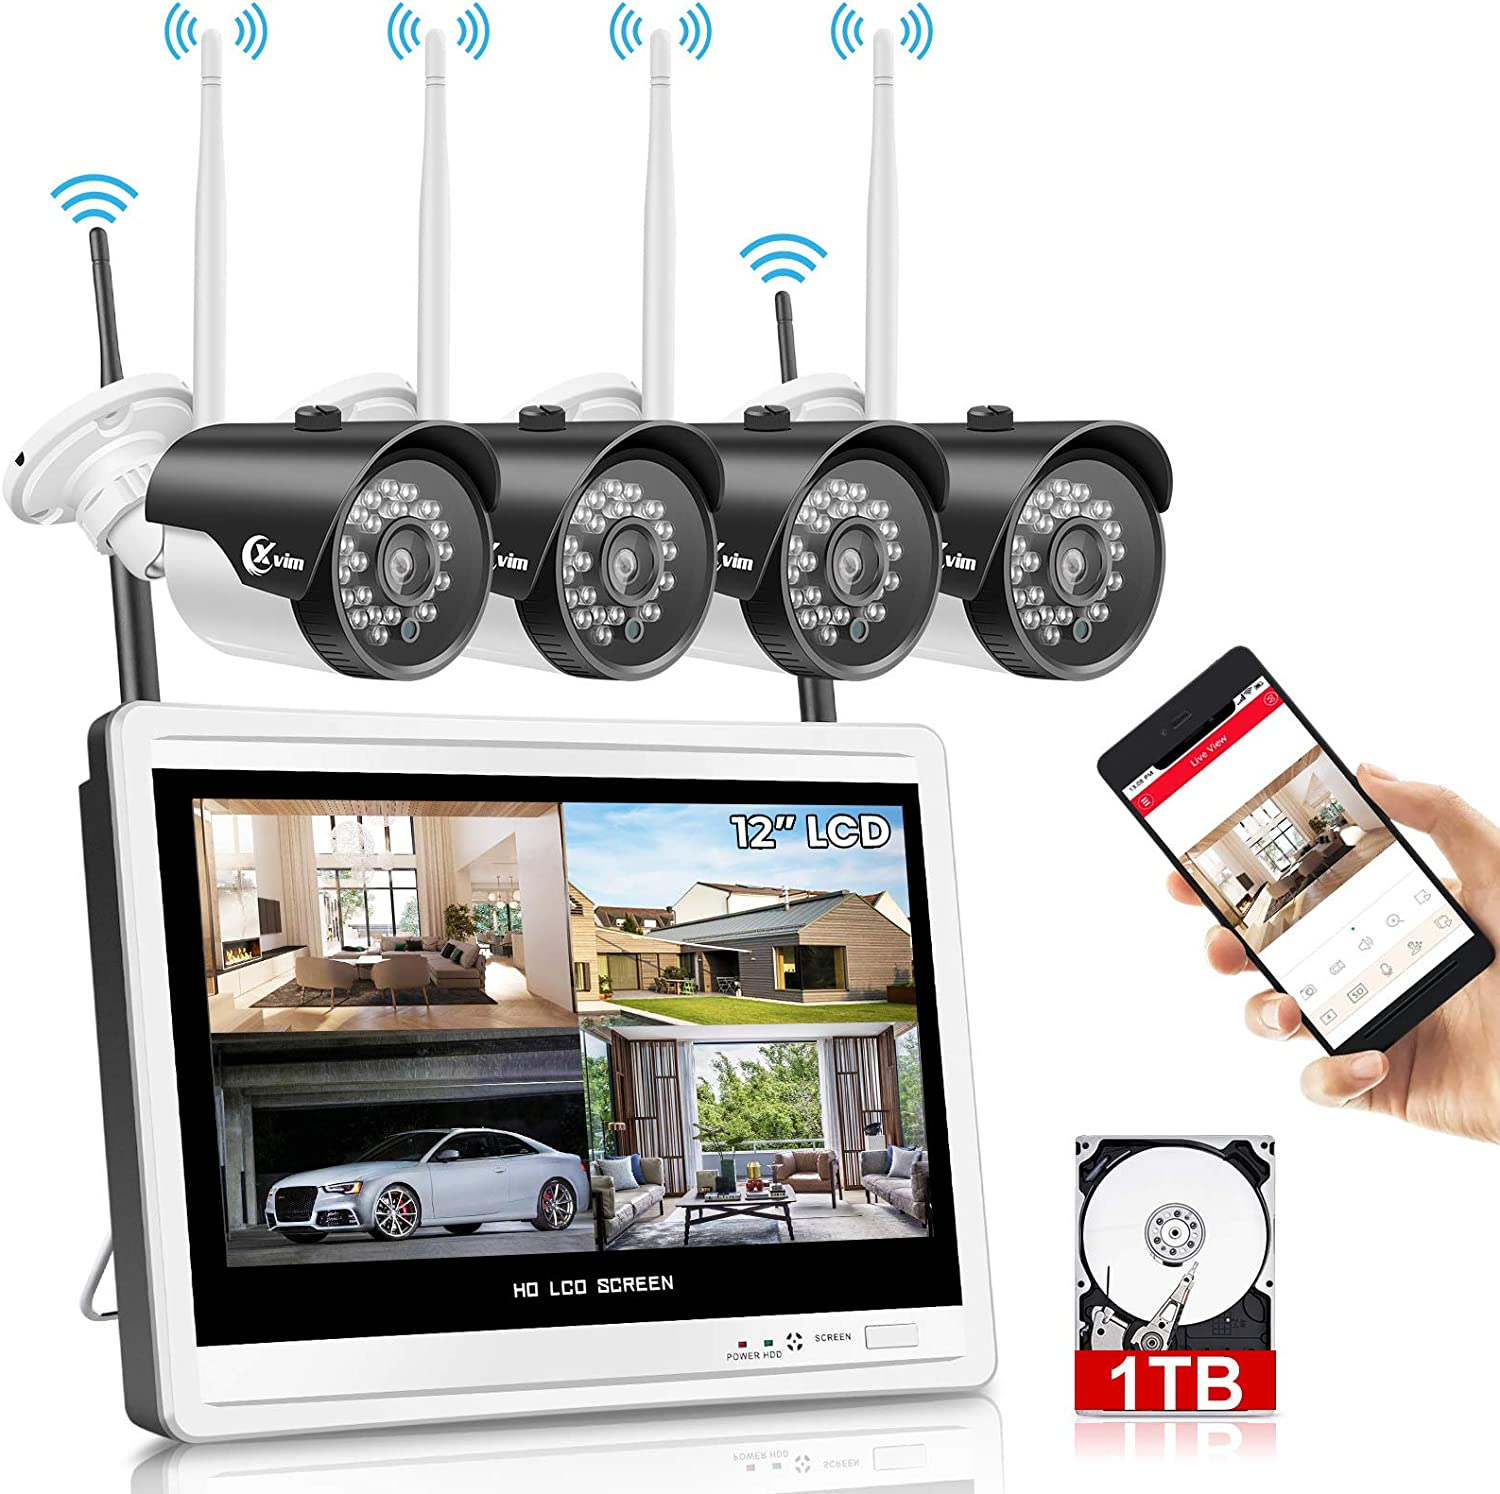 XVIM 12 Monitor Wireless Security Camera System for Home, 4pcs 2.0MP Outdoor Waterproof IP Cameras, 4 Channel HD 1080P WiFi Video Surveillance Cameras NVR Kits,Easy Remote View